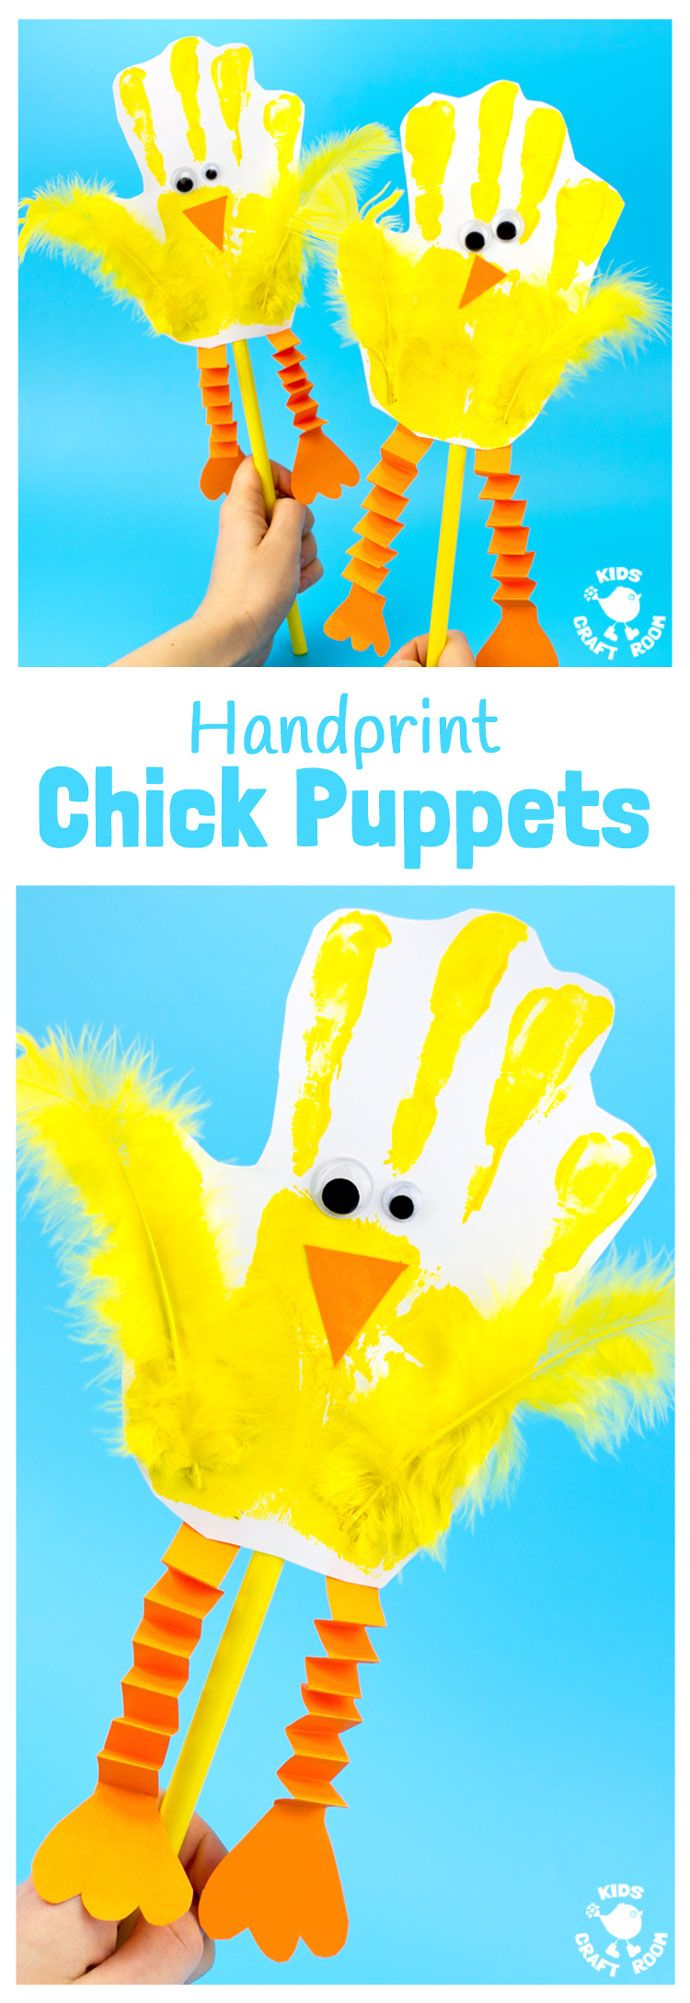 The Cutest Handprint Chick Puppets